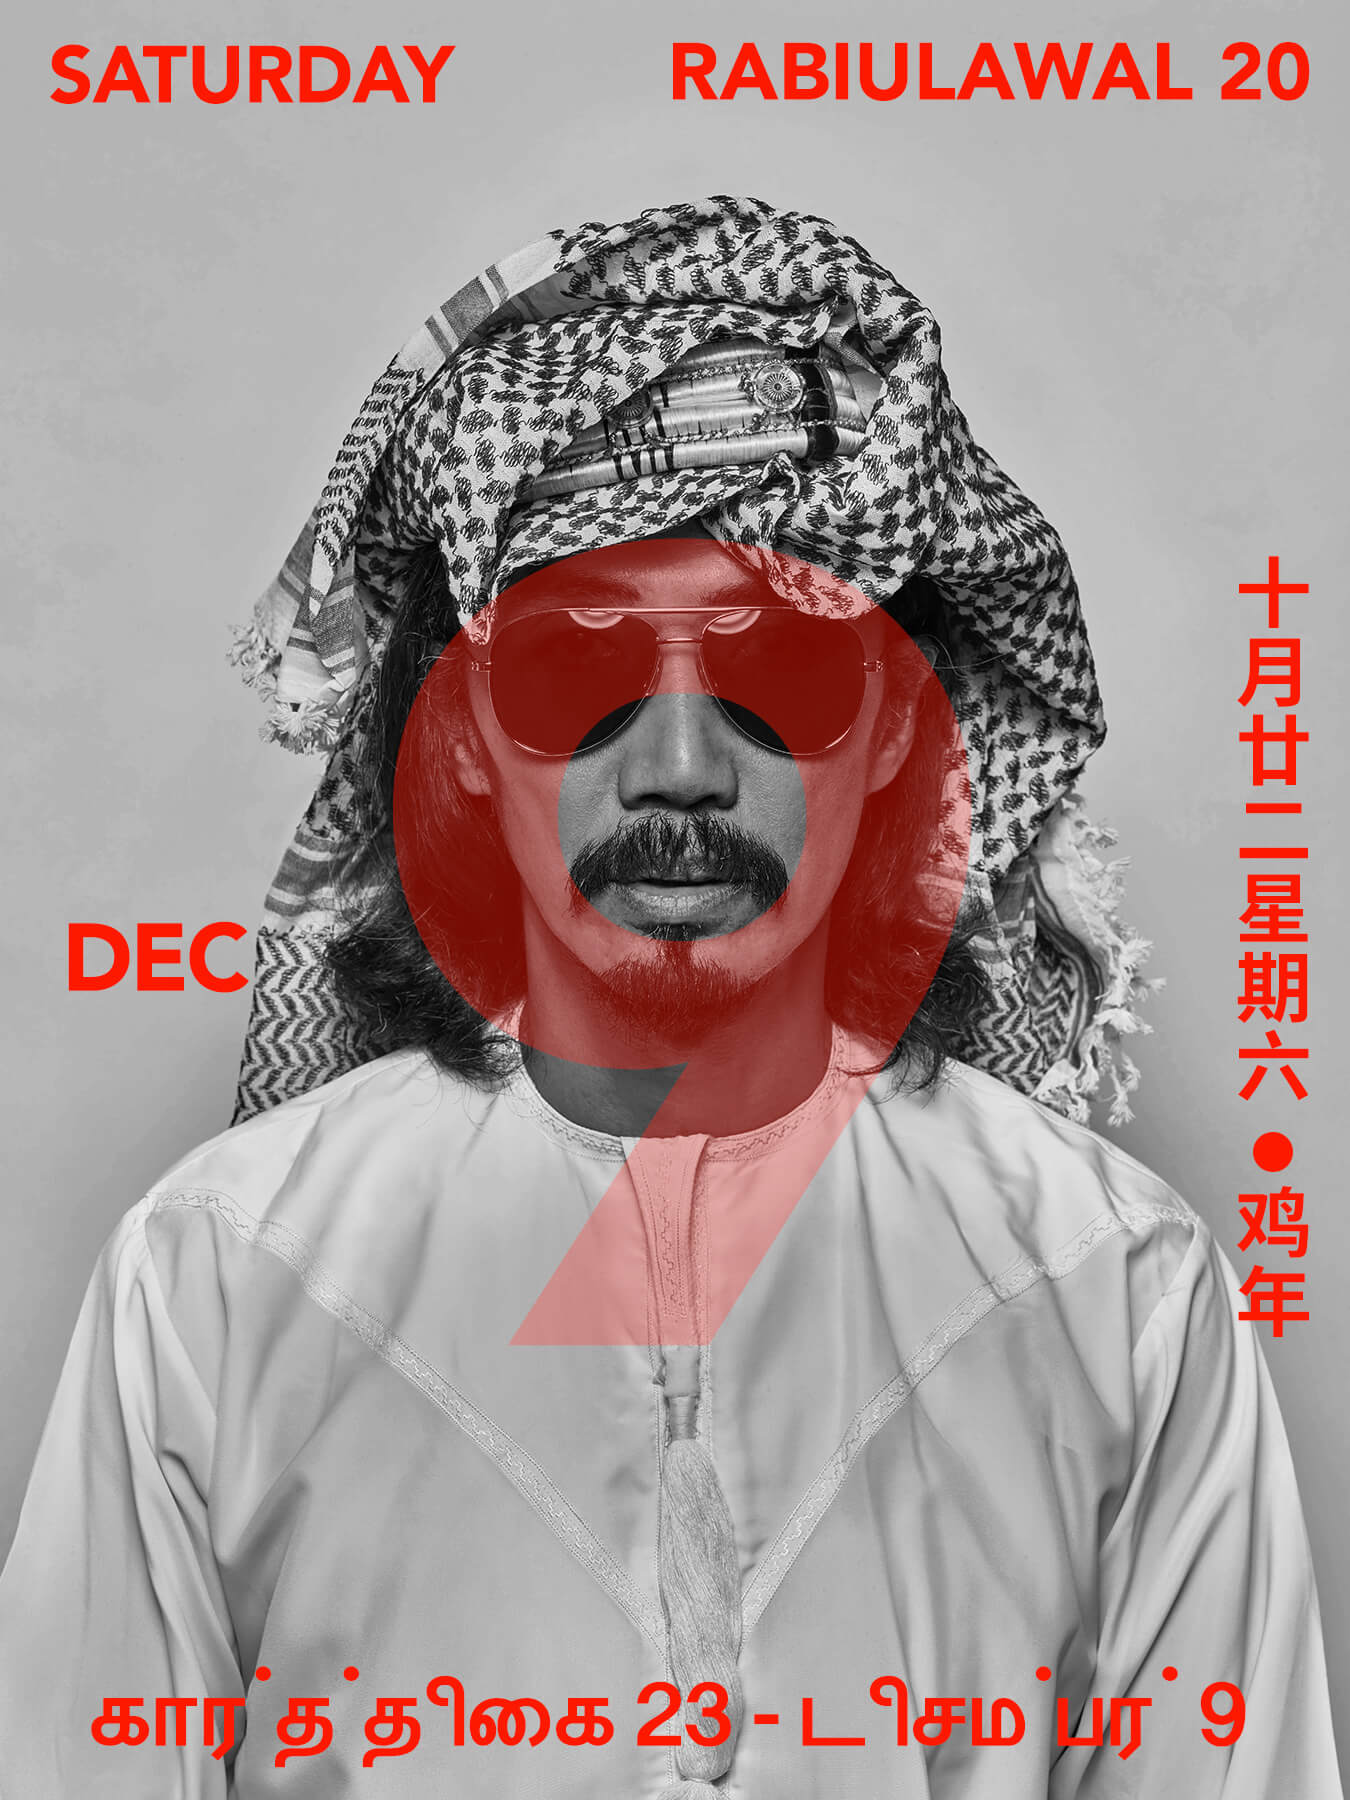 9 Dec 2017 Derong is photographed dressed like a Saudi prince